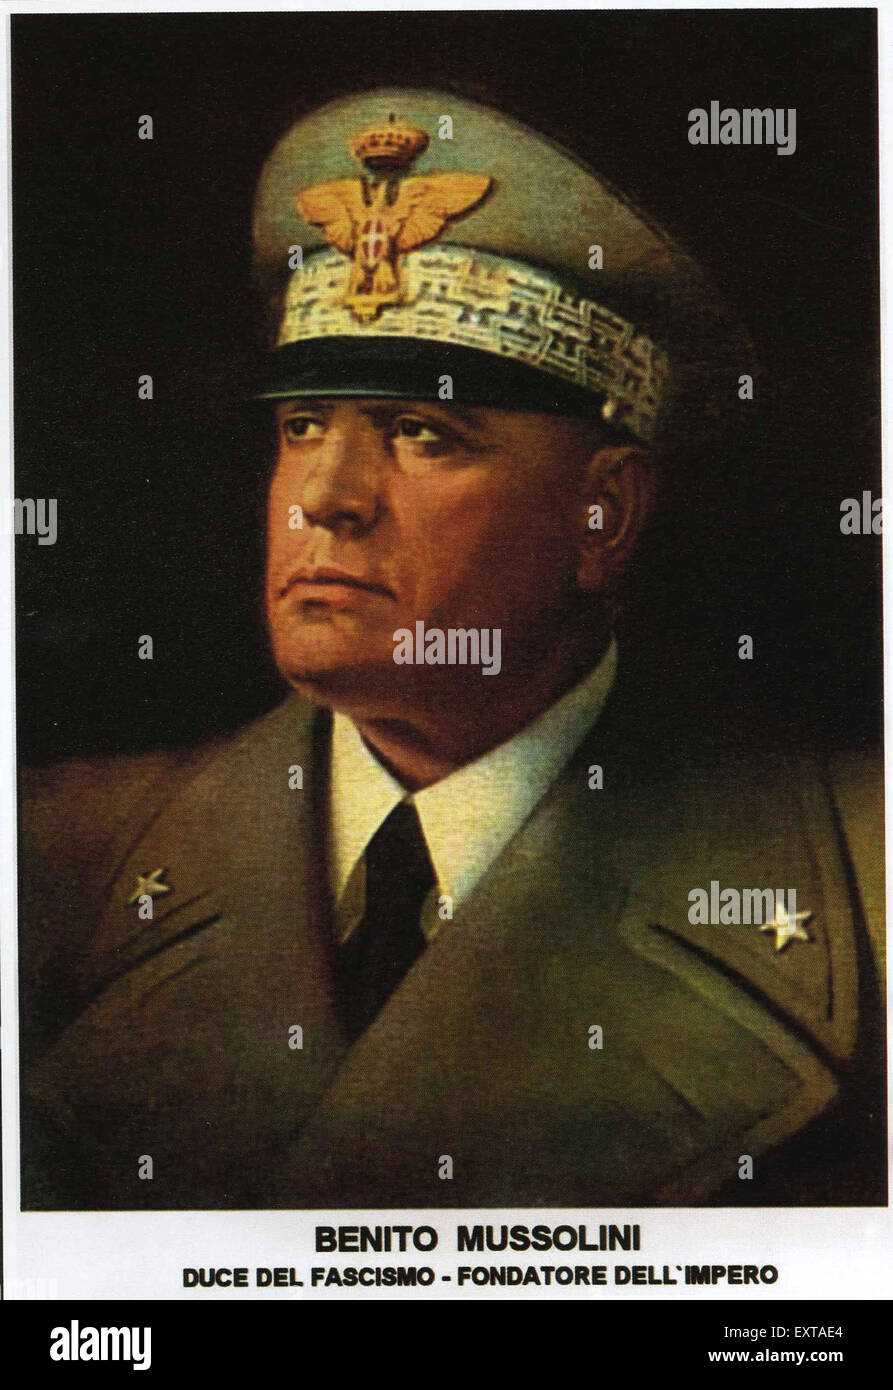 a biography of benito mussolini an italian nazi leader This new addition to the longman world biography series integrates the latest scholarship on the life of mussolini with the story of italian fascism combines the story of mussolini, the man, with the story of italian fascism.